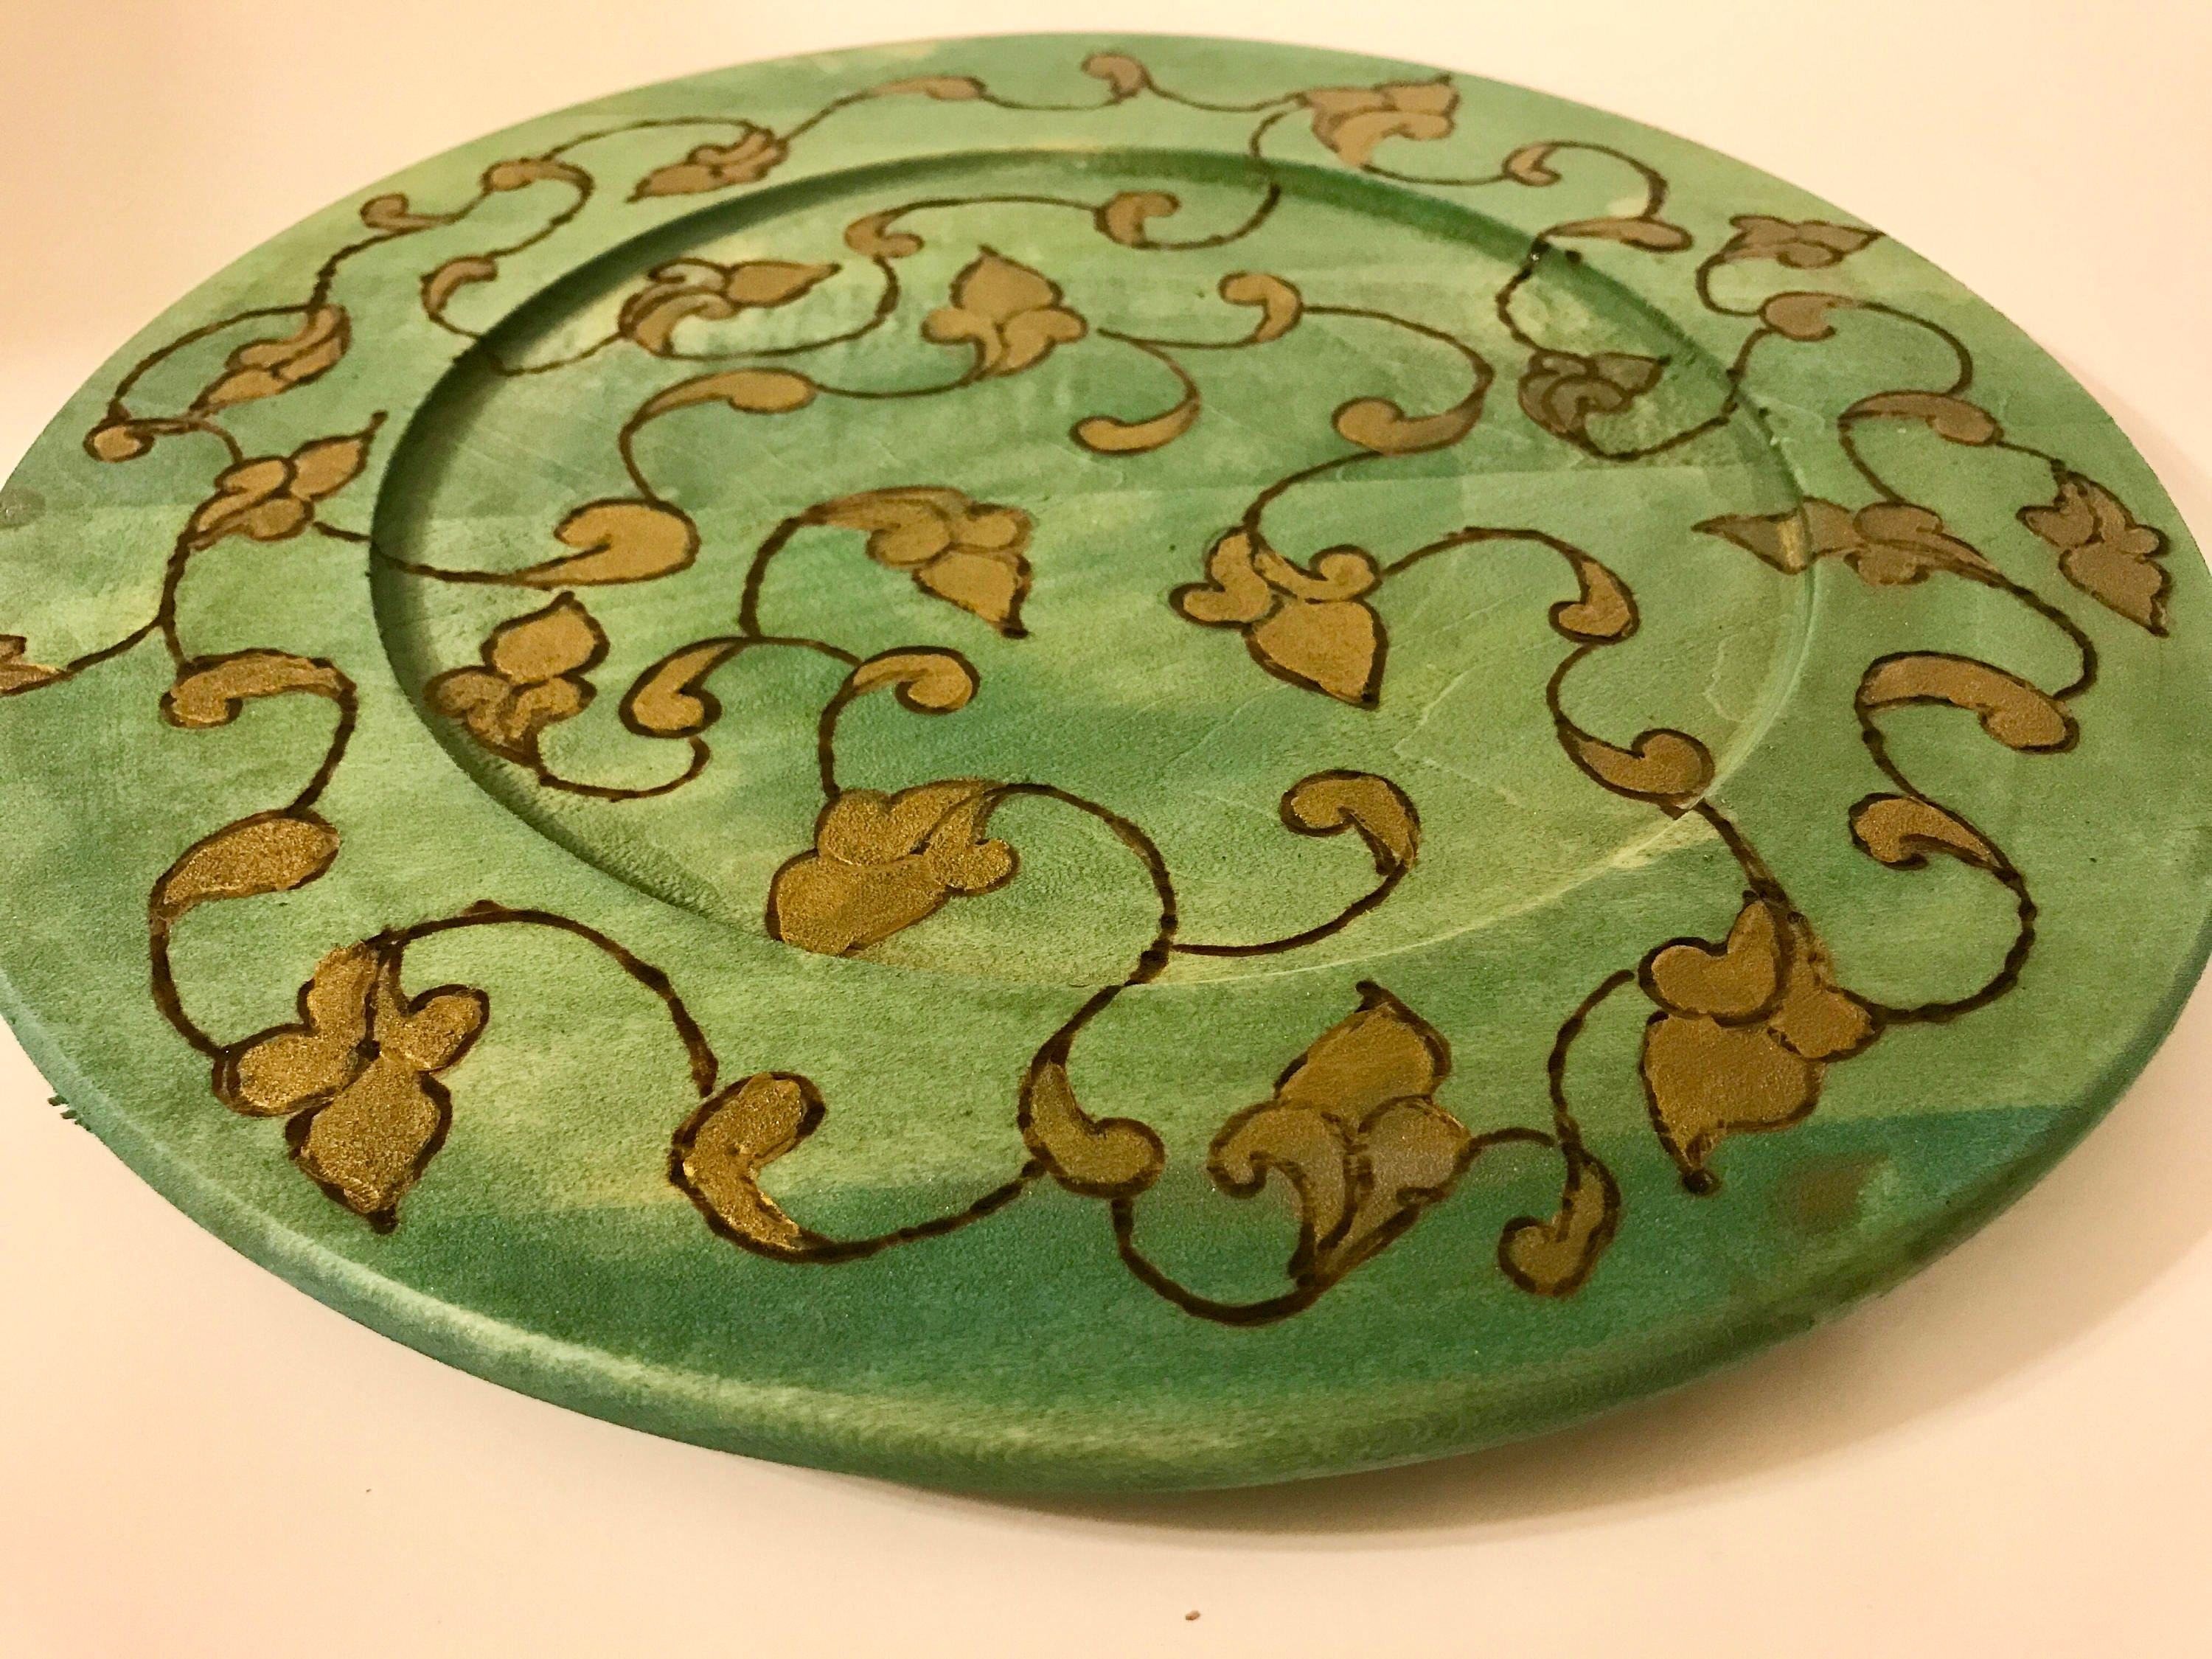 A Mid Summer Nights Dream Collection Wooden Home Decor Plate by The  Arabesque. Woodburned Vine and Scroll Design In Green and Gold